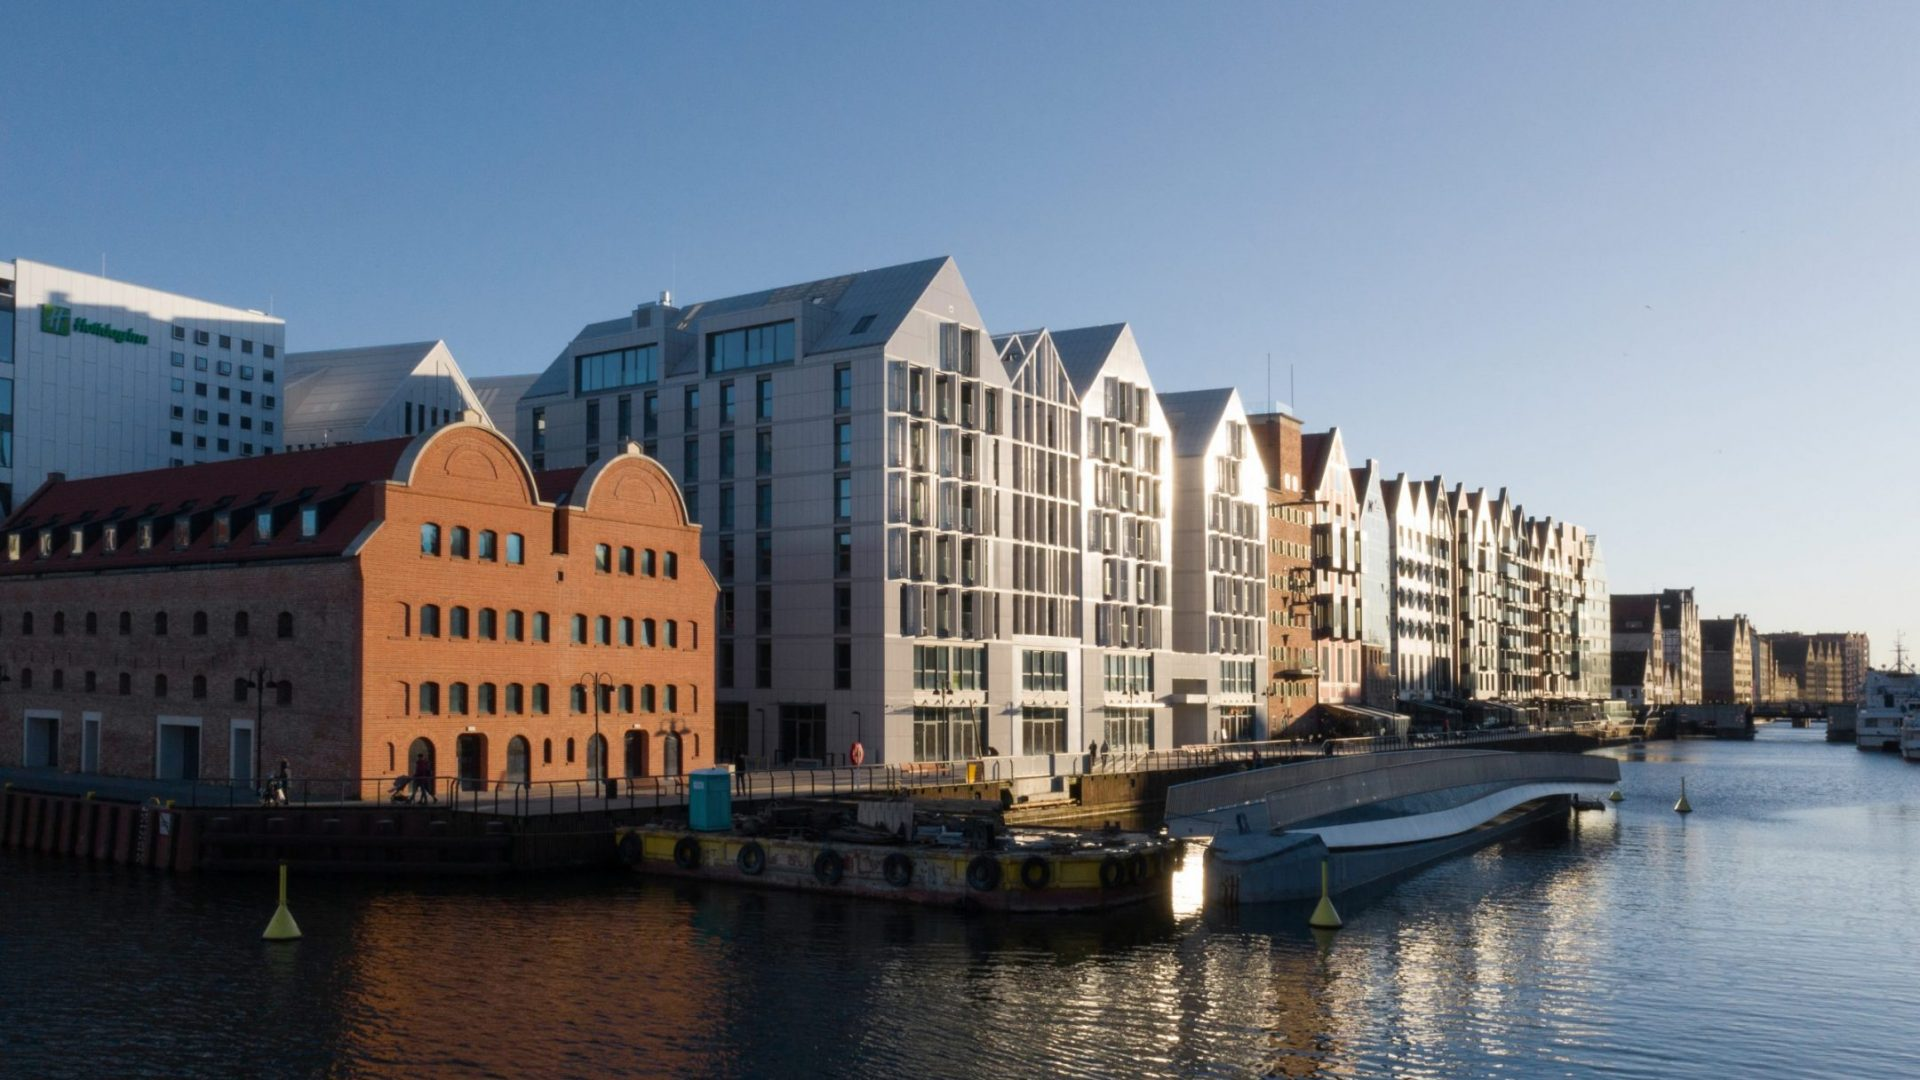 Granary Island in Gdańsk, the 600-year-old trading site which won Best Urban Project at the MIPIM Awards 2020